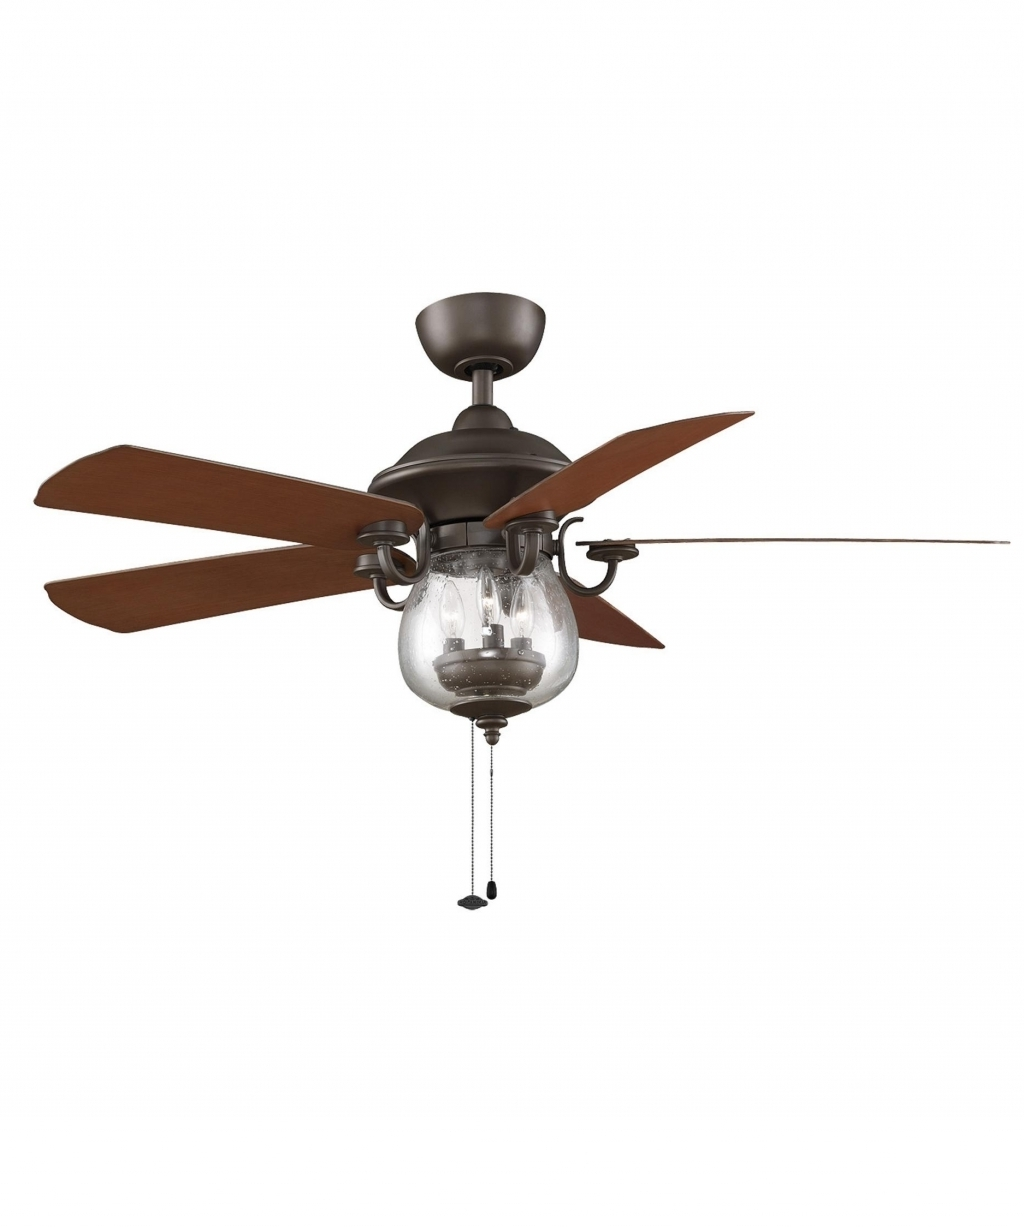 Most Recent Interior Design: Flush Mount Outdoor Ceiling Fans Fresh Ceiling Intended For Small Outdoor Ceiling Fans With Lights (View 7 of 20)